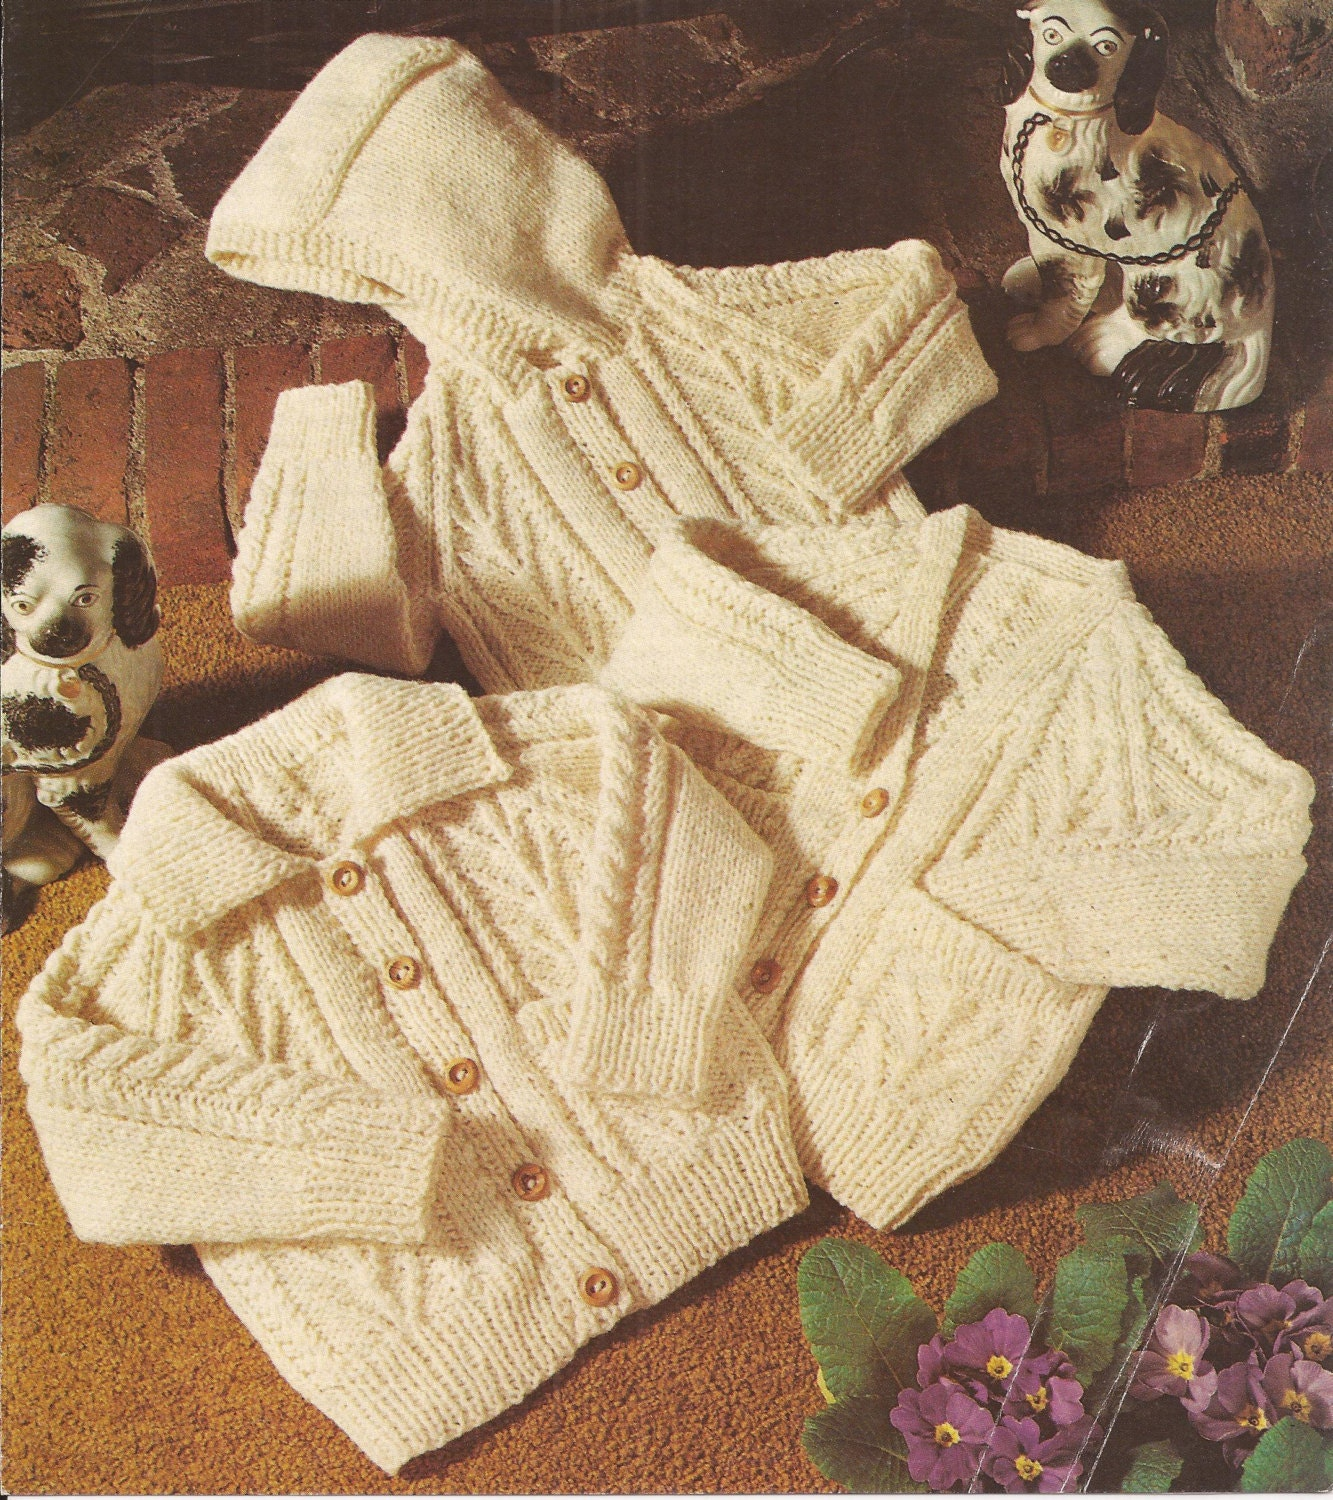 Aran Childrens Knitting Patterns : PDF Vintage Knitting Pattern Baby/Childrens Aran Cardigan